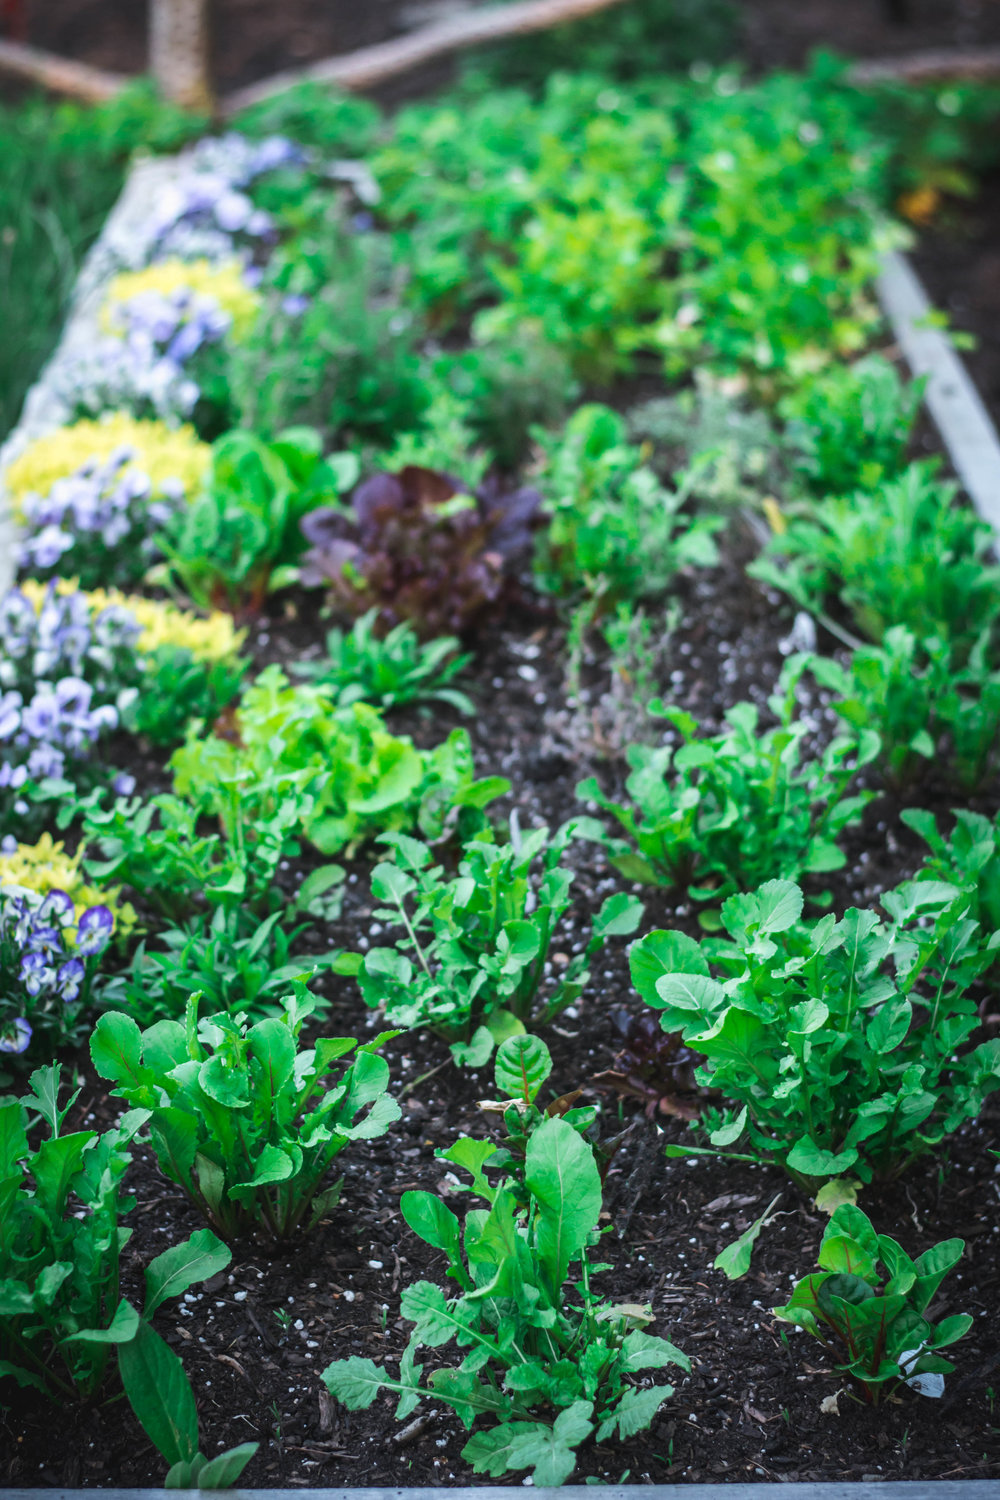 growing greens - There are no rules on how to grow a kitchen garden. Hints and inspiration help guide the process. For some, cut flowers are important. For others it is food function driving the planting. A well thought out kitchen garden, however, takes advantage of what is space is available and what will grow well horizontally and vertically given the plot's location.